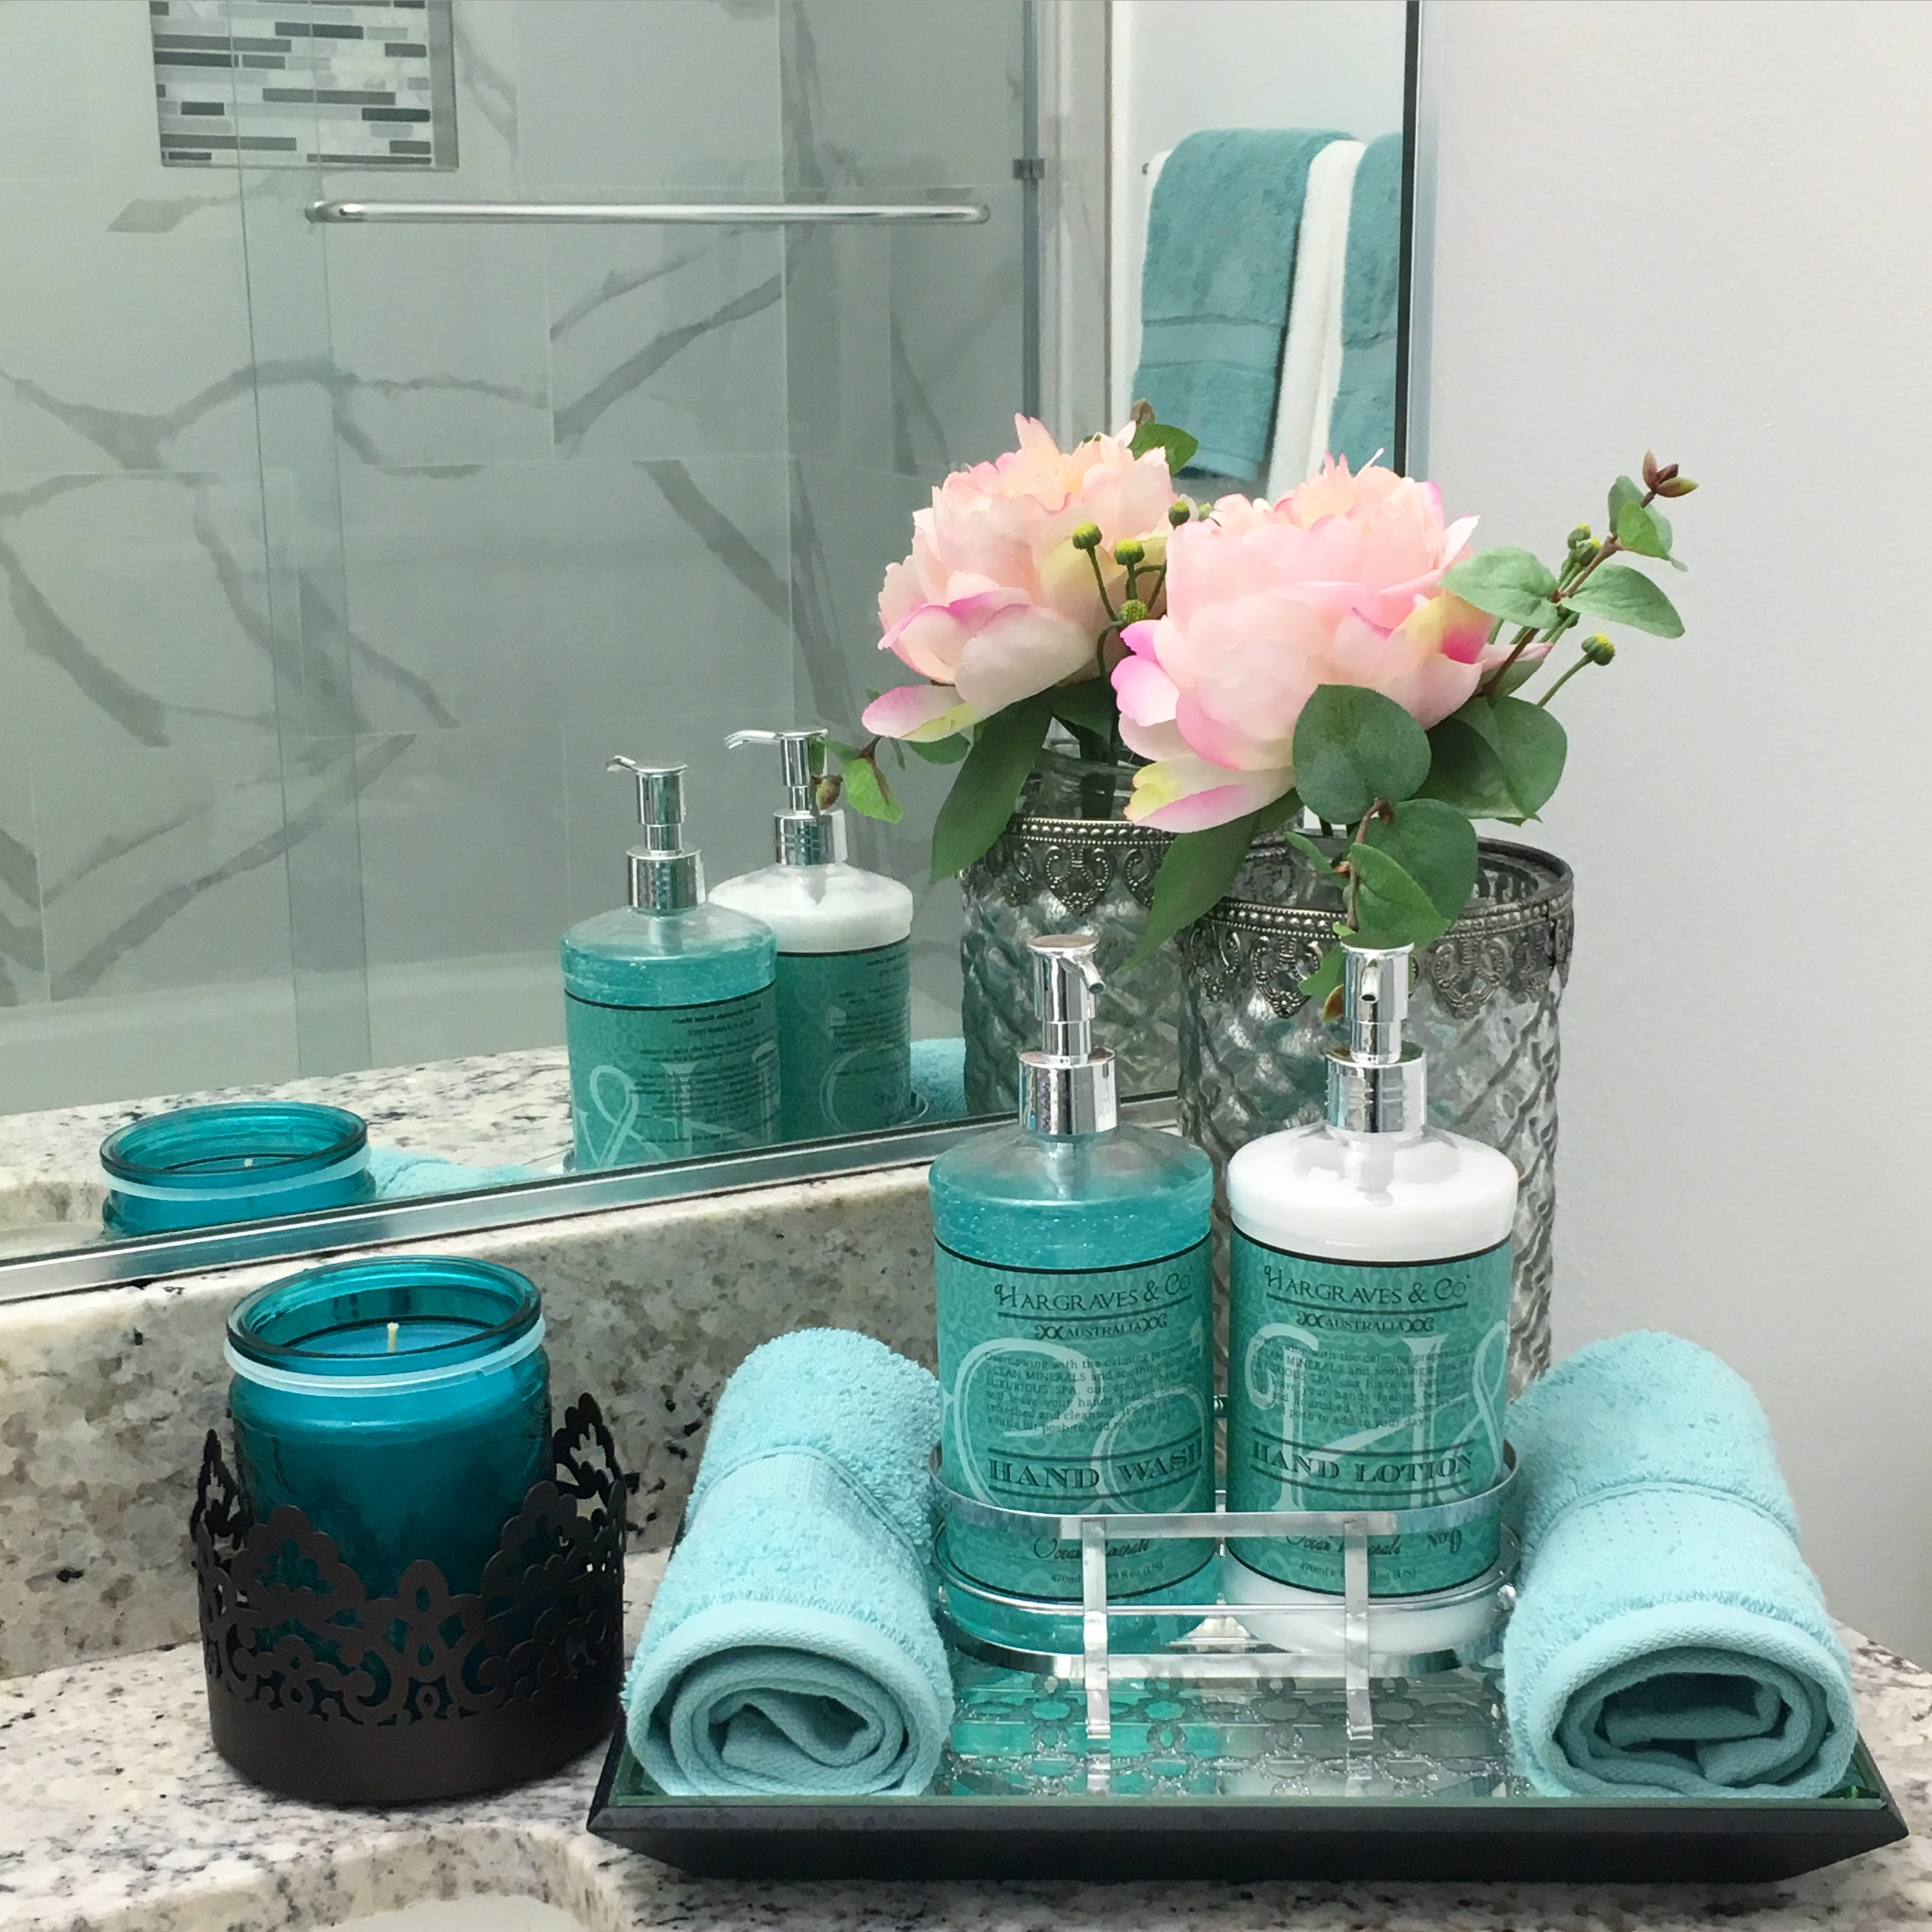 Bathroom decor ideas for Aqua blue bathroom accessories